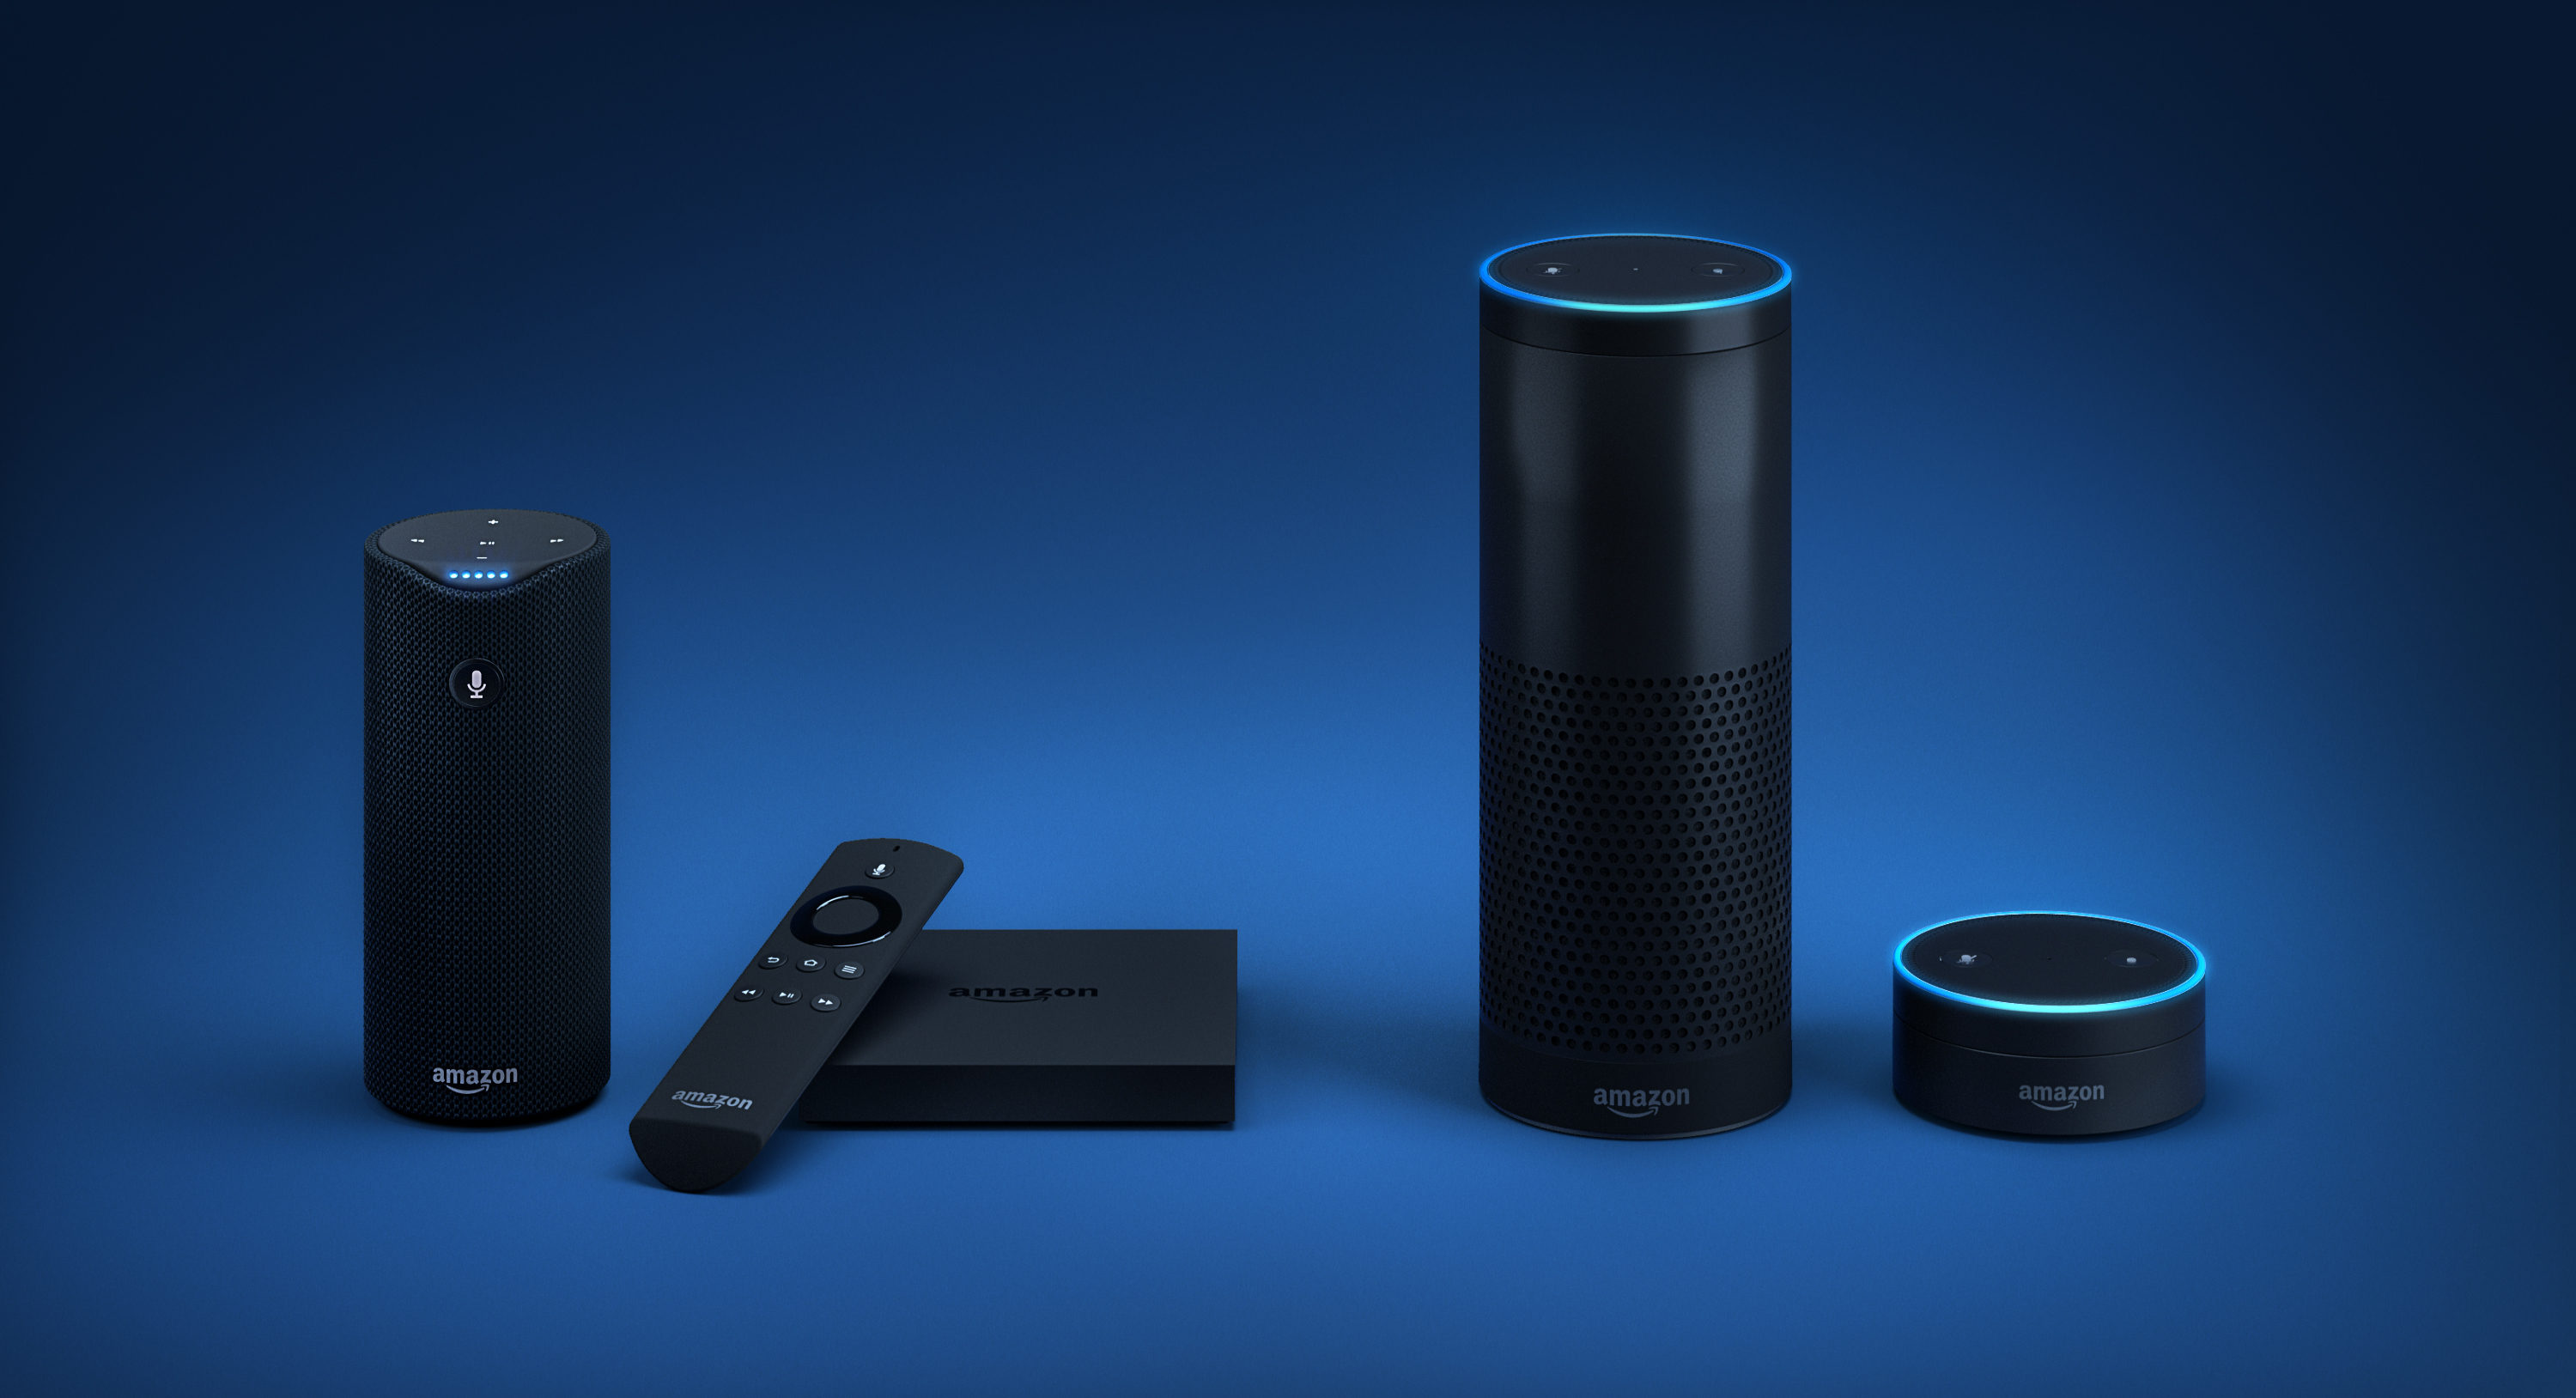 10 Apps That Make the Amazon Echo Even Better